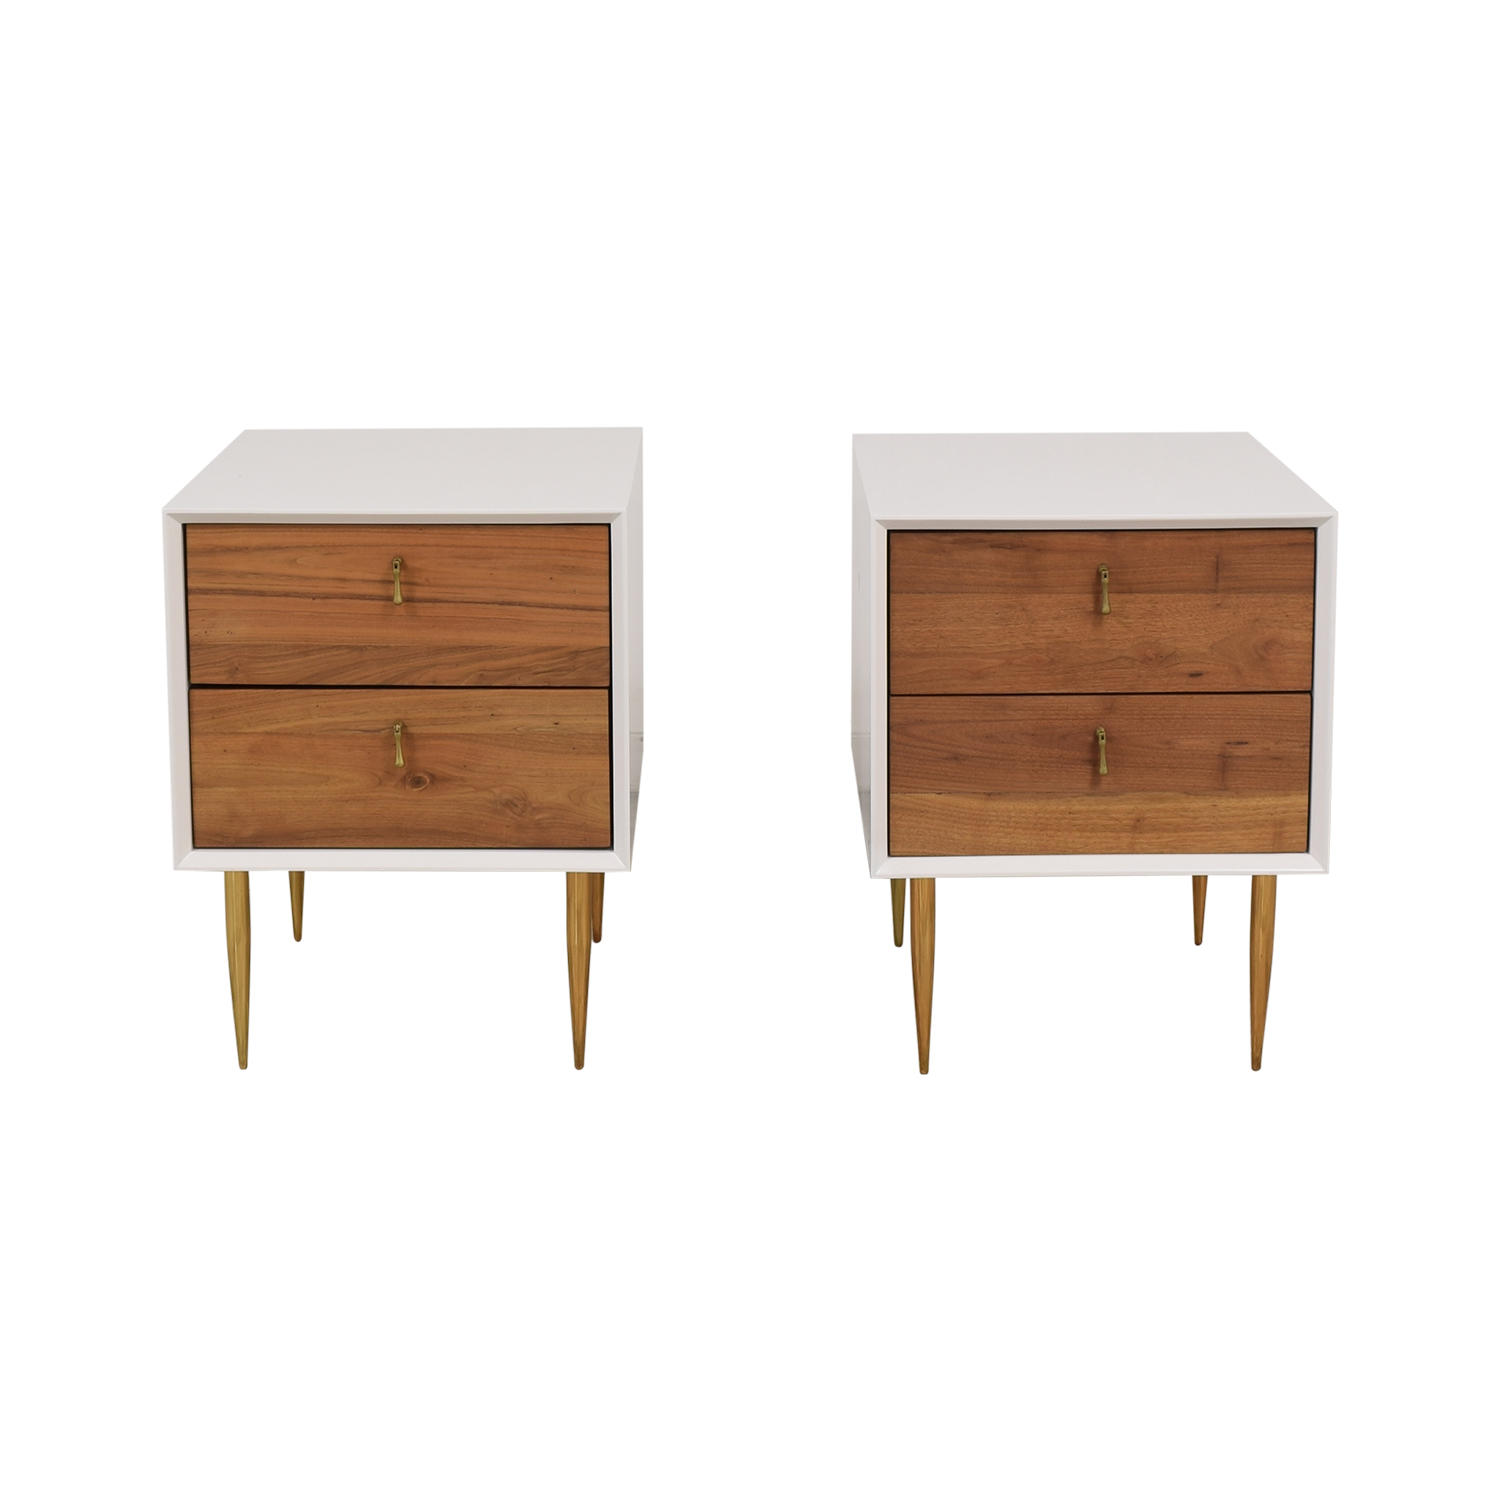 Organic Modernism Organic Modernism Two Drawer Bedside Tables discount